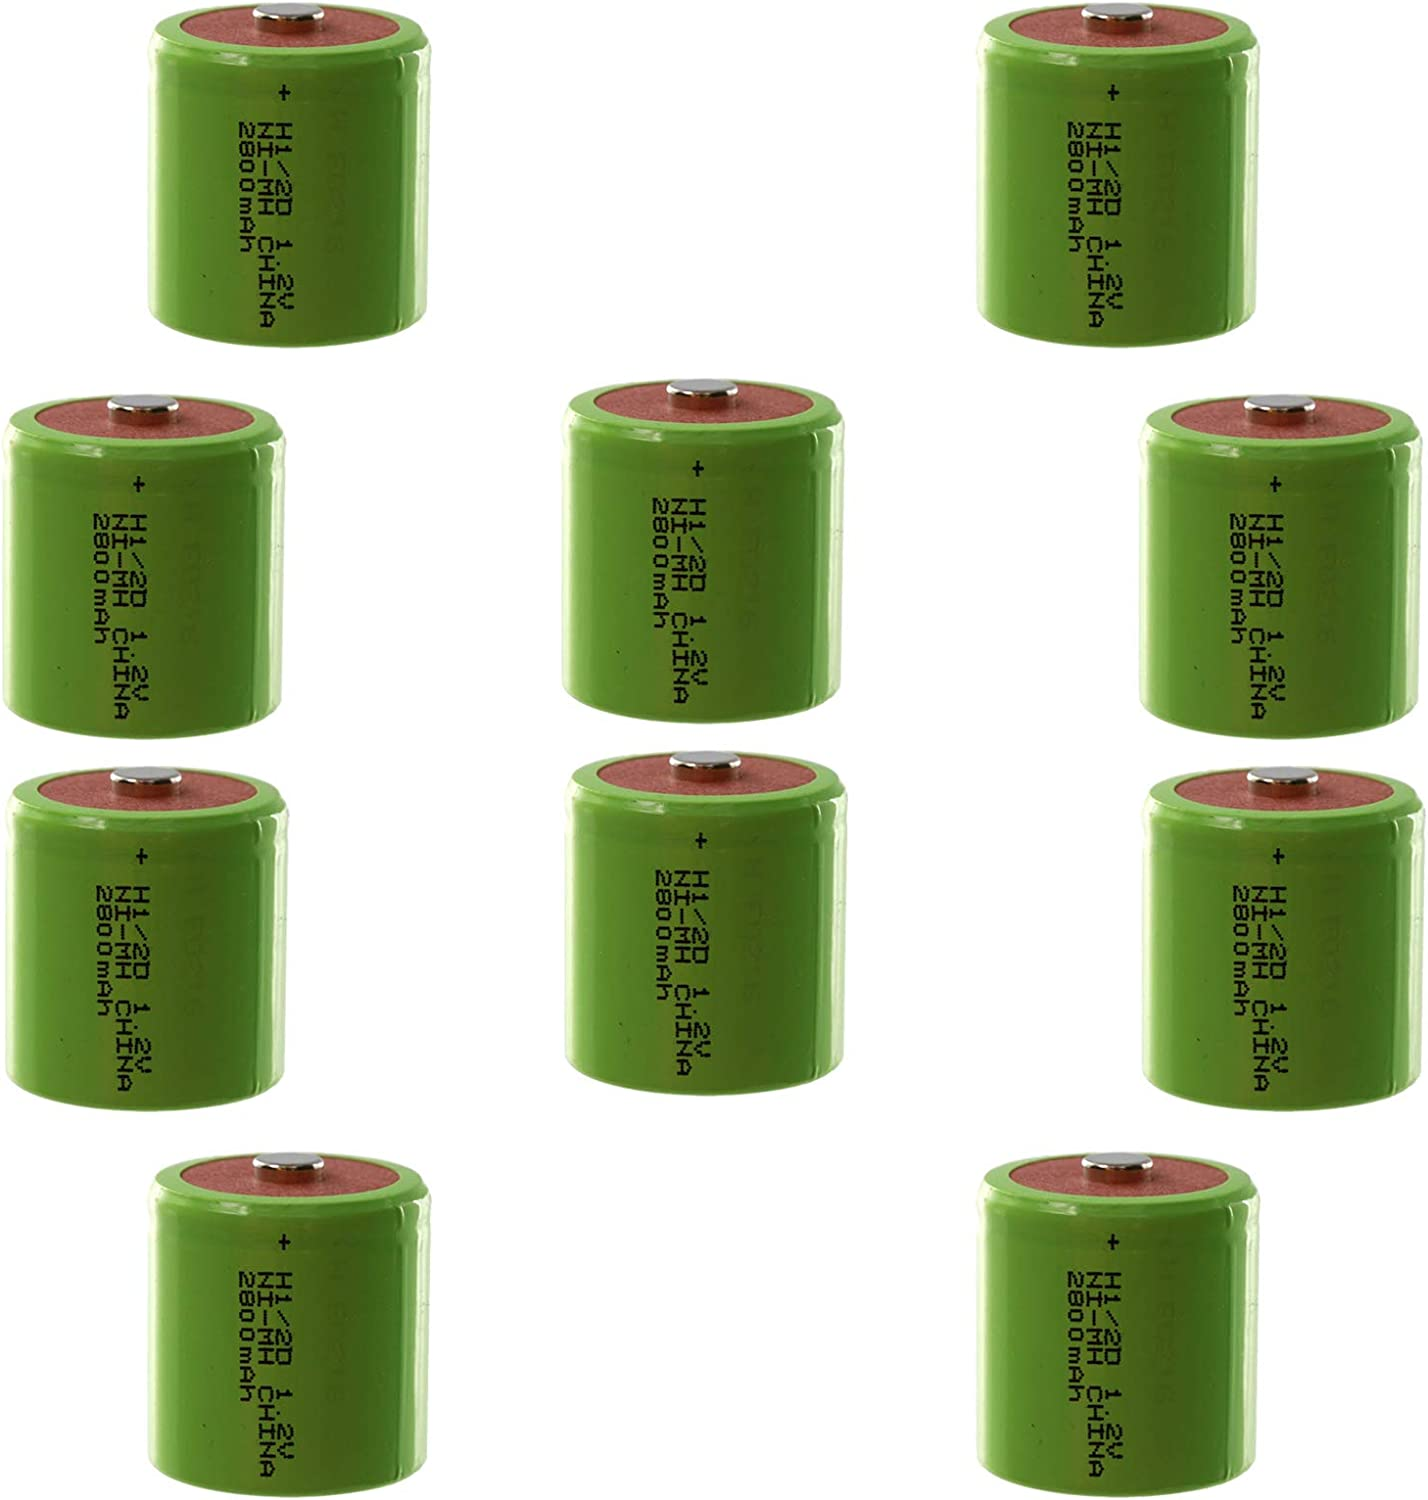 10-PACK Exell 1/2D Rechargeable Battery 2900mAh NiMH 1.2V Button Top use with electric mopeds meters two radios electric razors toothbrushes cameras mobile phones pagers USA SHIP 612BlcjfSyhL